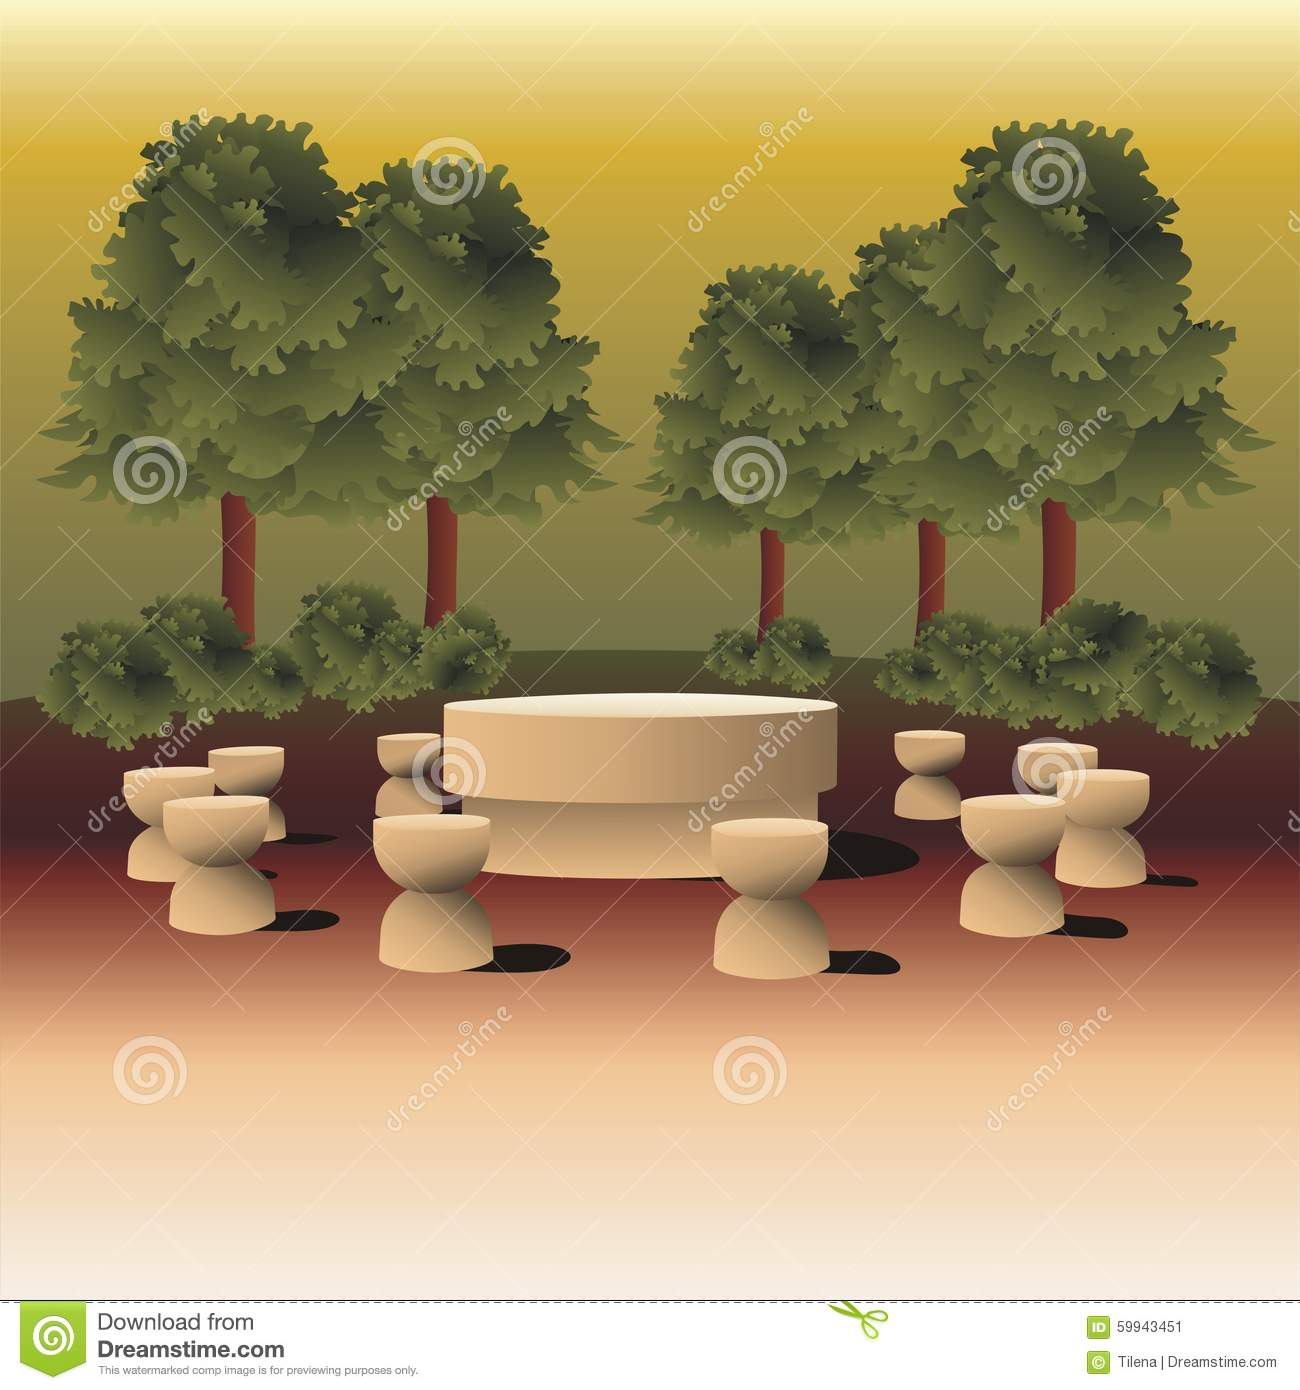 Landscape Illustration Inspired By Table Of Silence Sculpture.